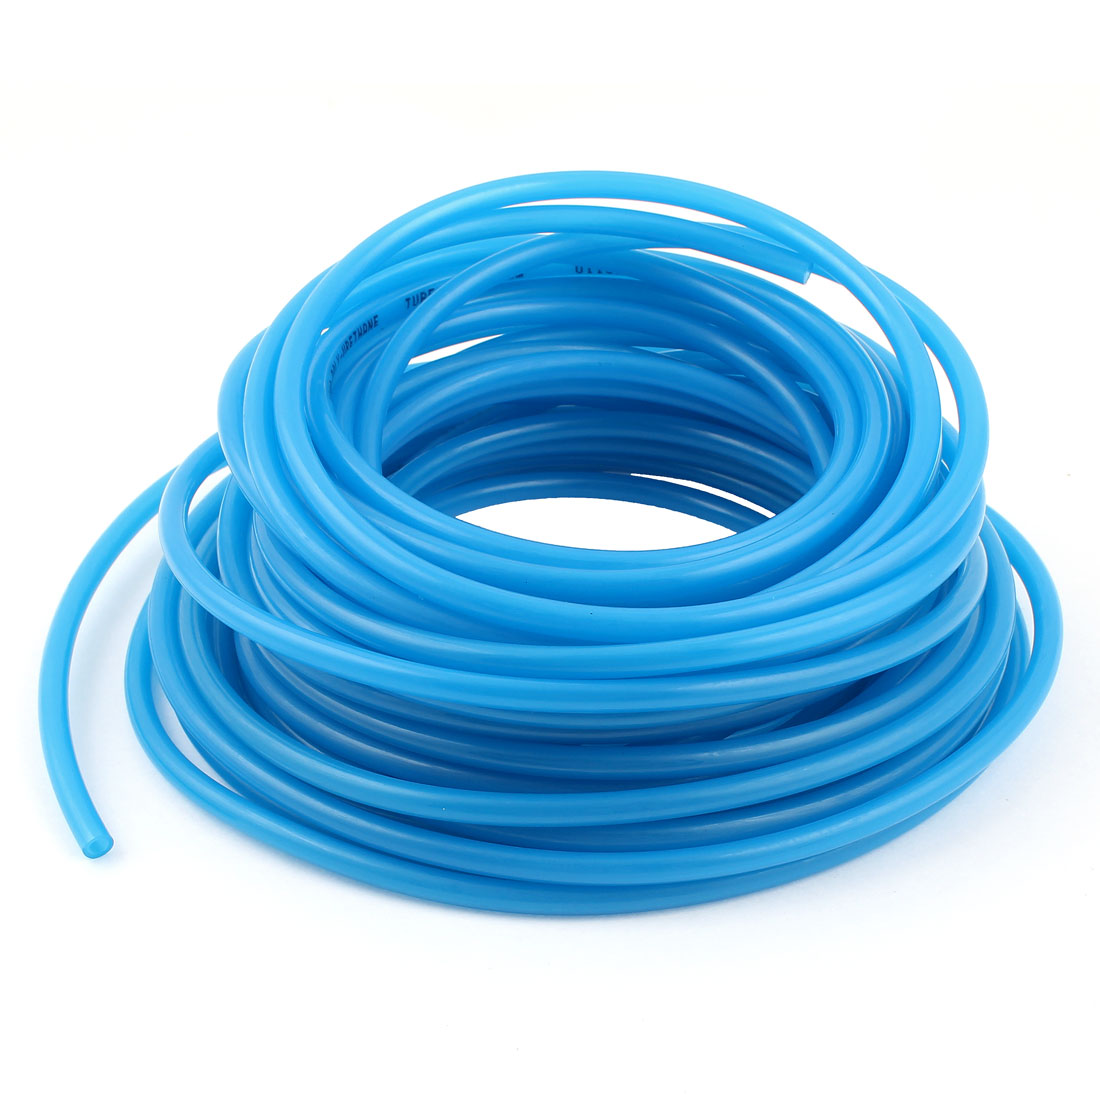 15m 50ft 6mmx4mm Pneumatic Polyurethane PU Hose Tube Pipe Clear Blue